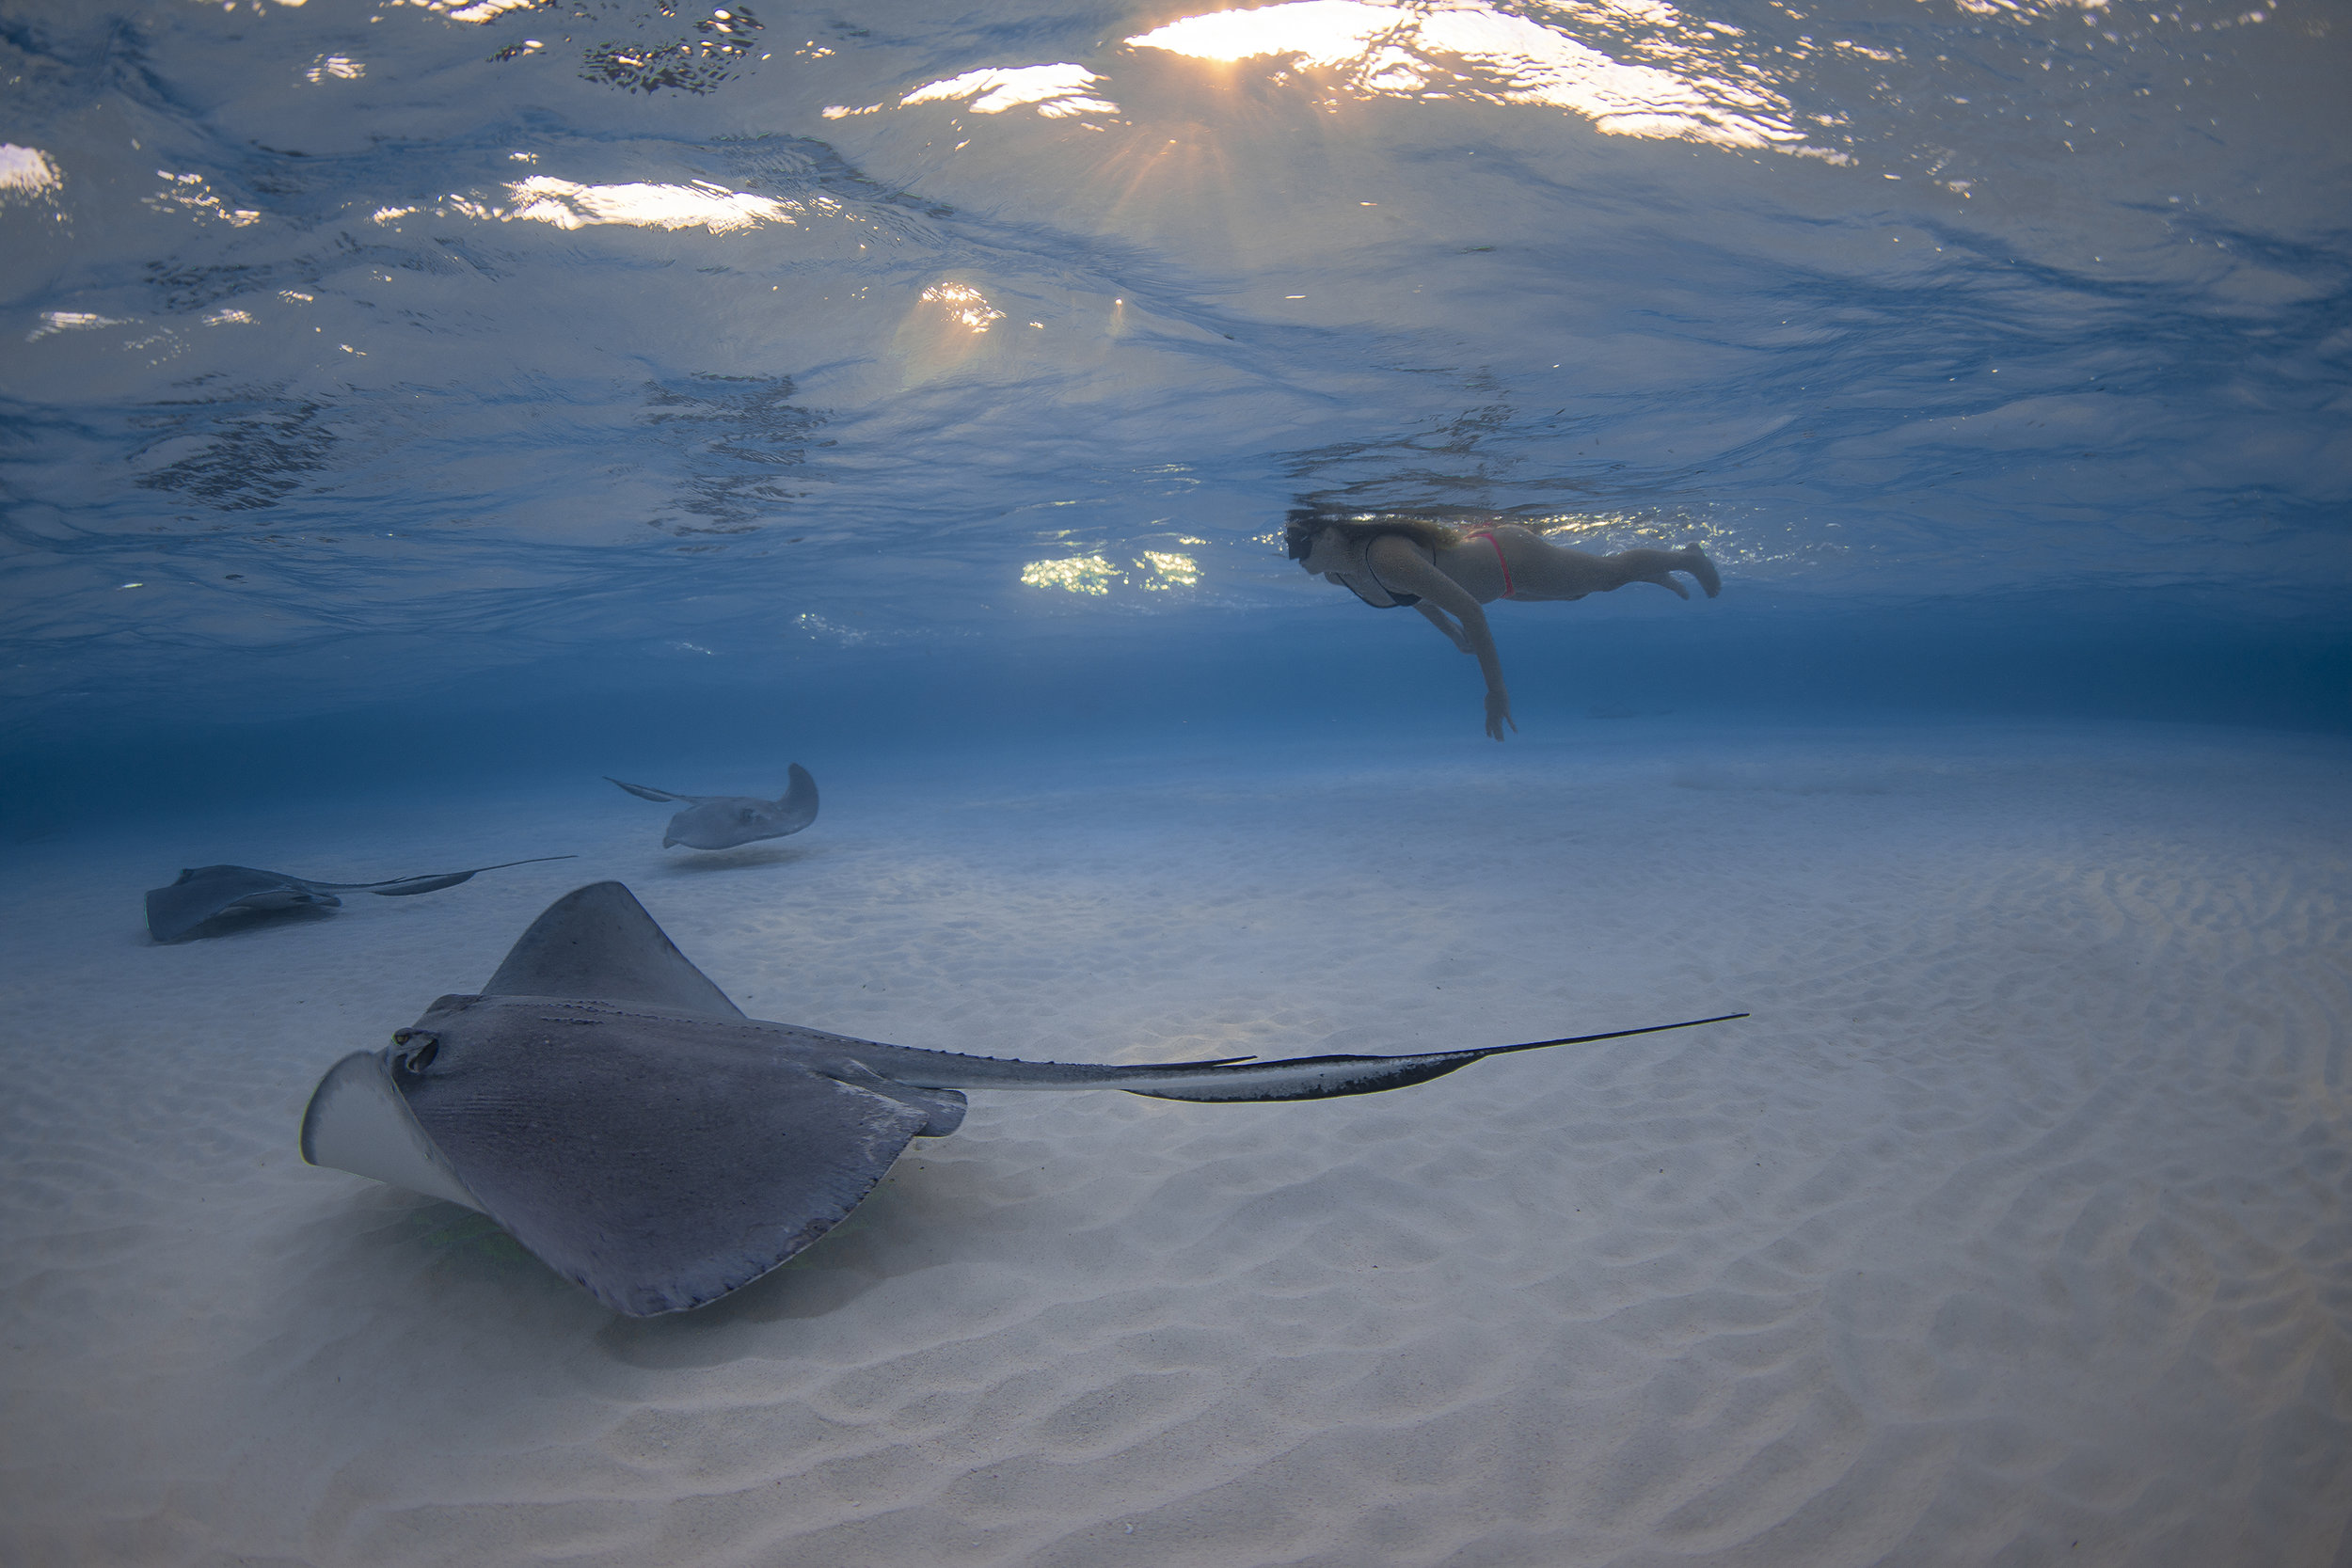 southern rays with freediver in cayman islands Credit: Jason Washington / Coral Reef Image Bank